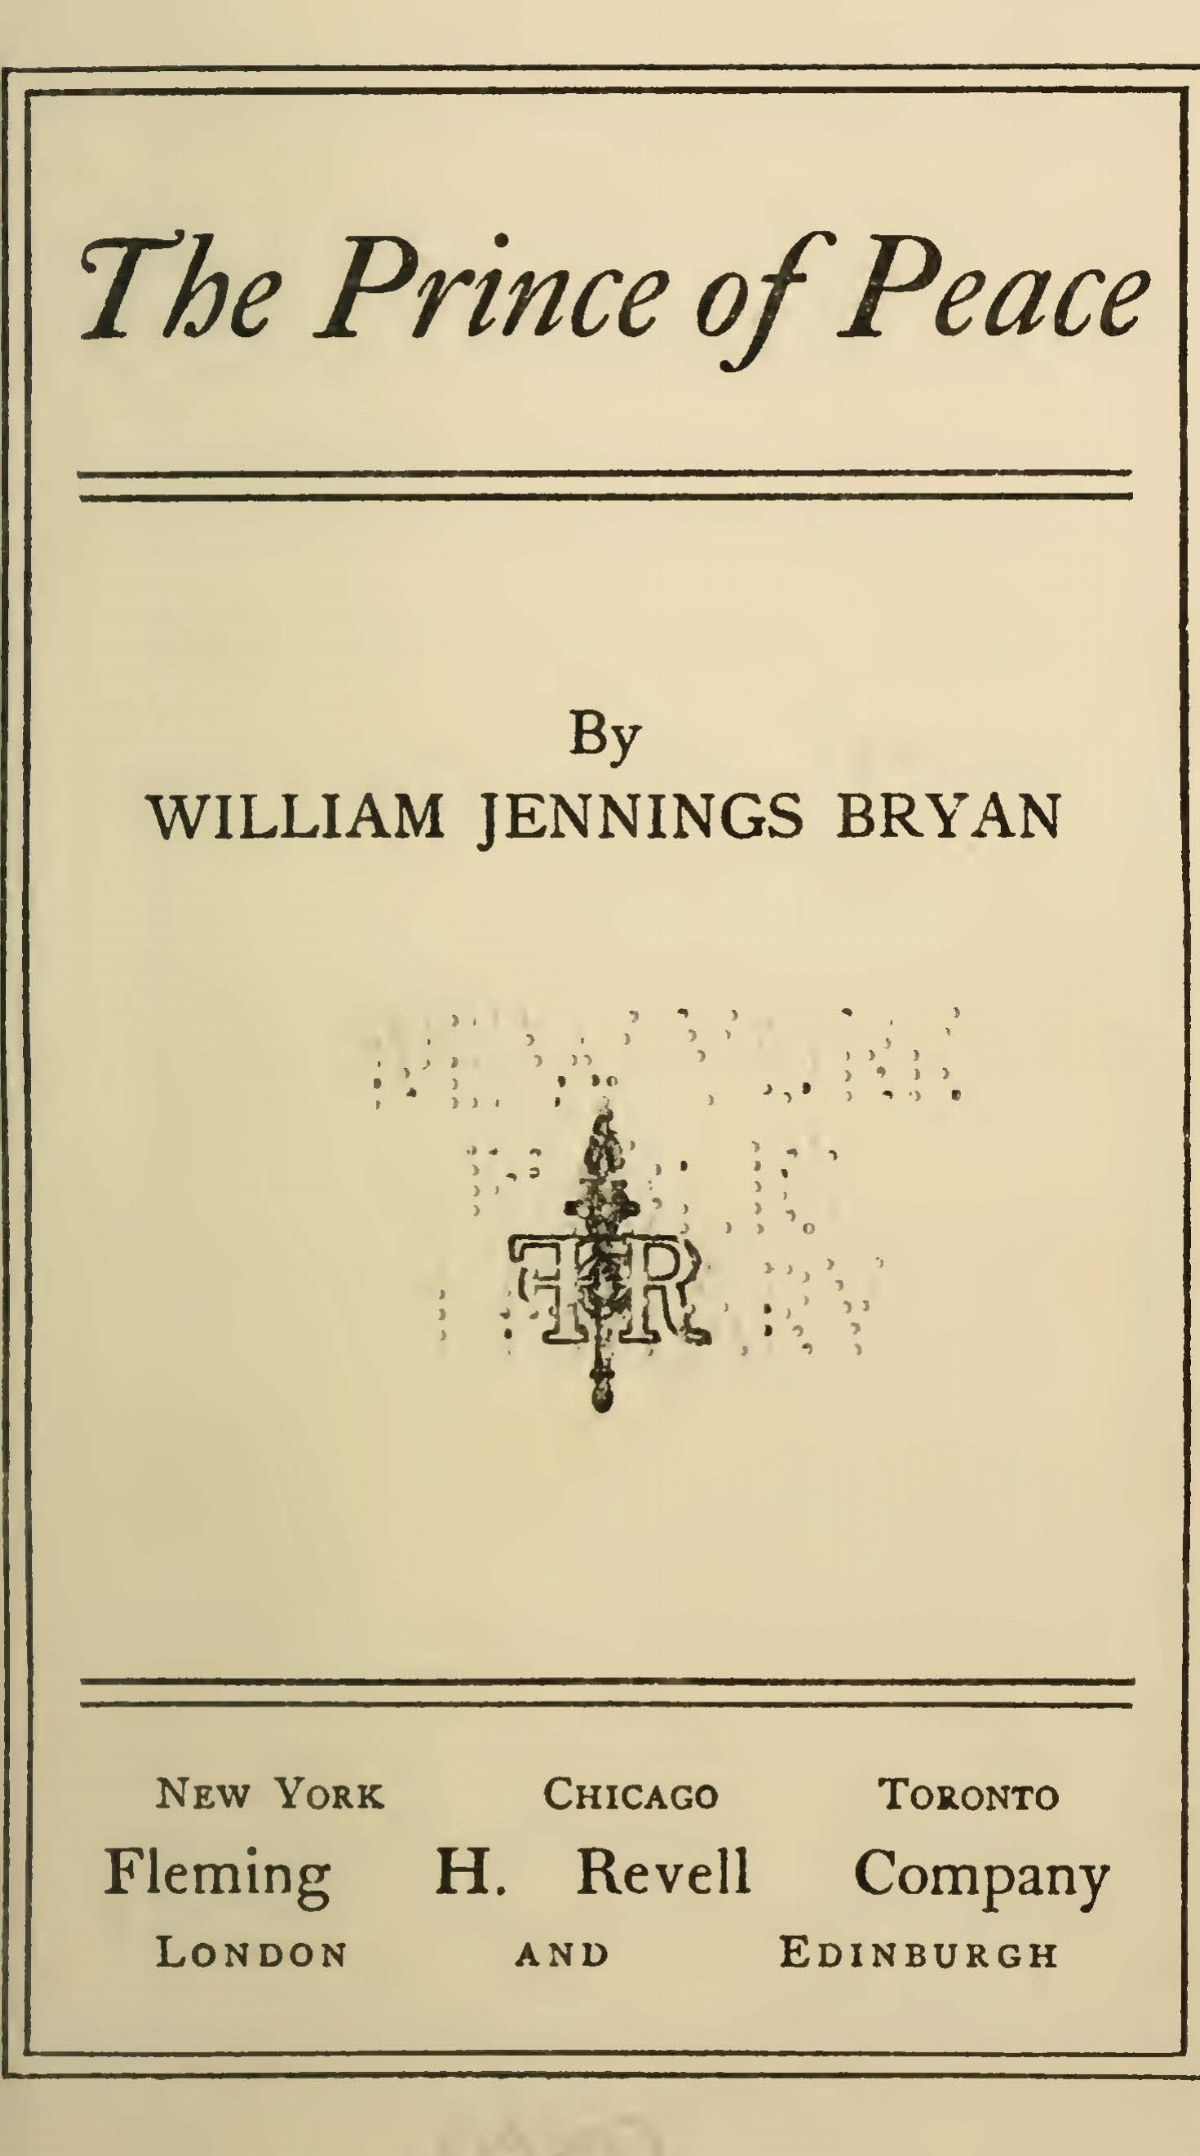 Bryan, Sr., William Jennings, The Prince of Peace Title Page.jpg